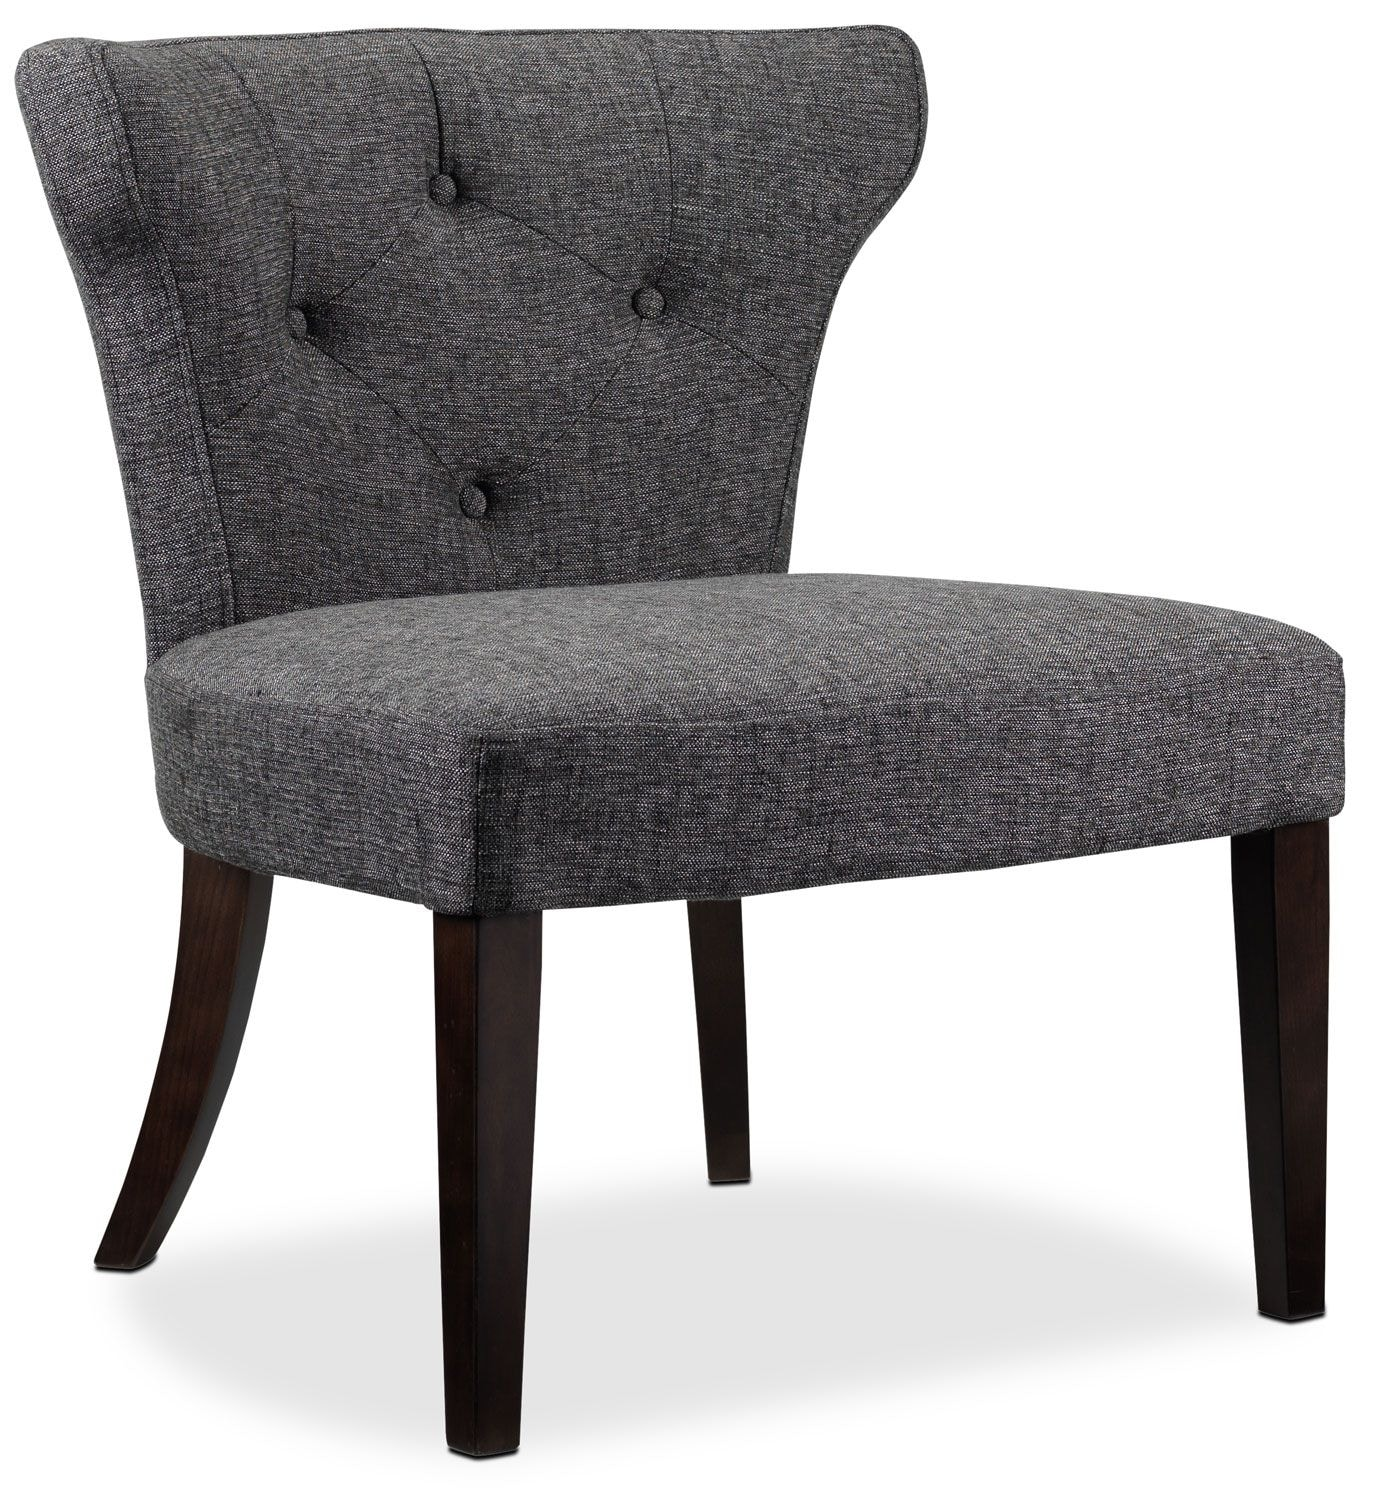 Corrina Accent Chair